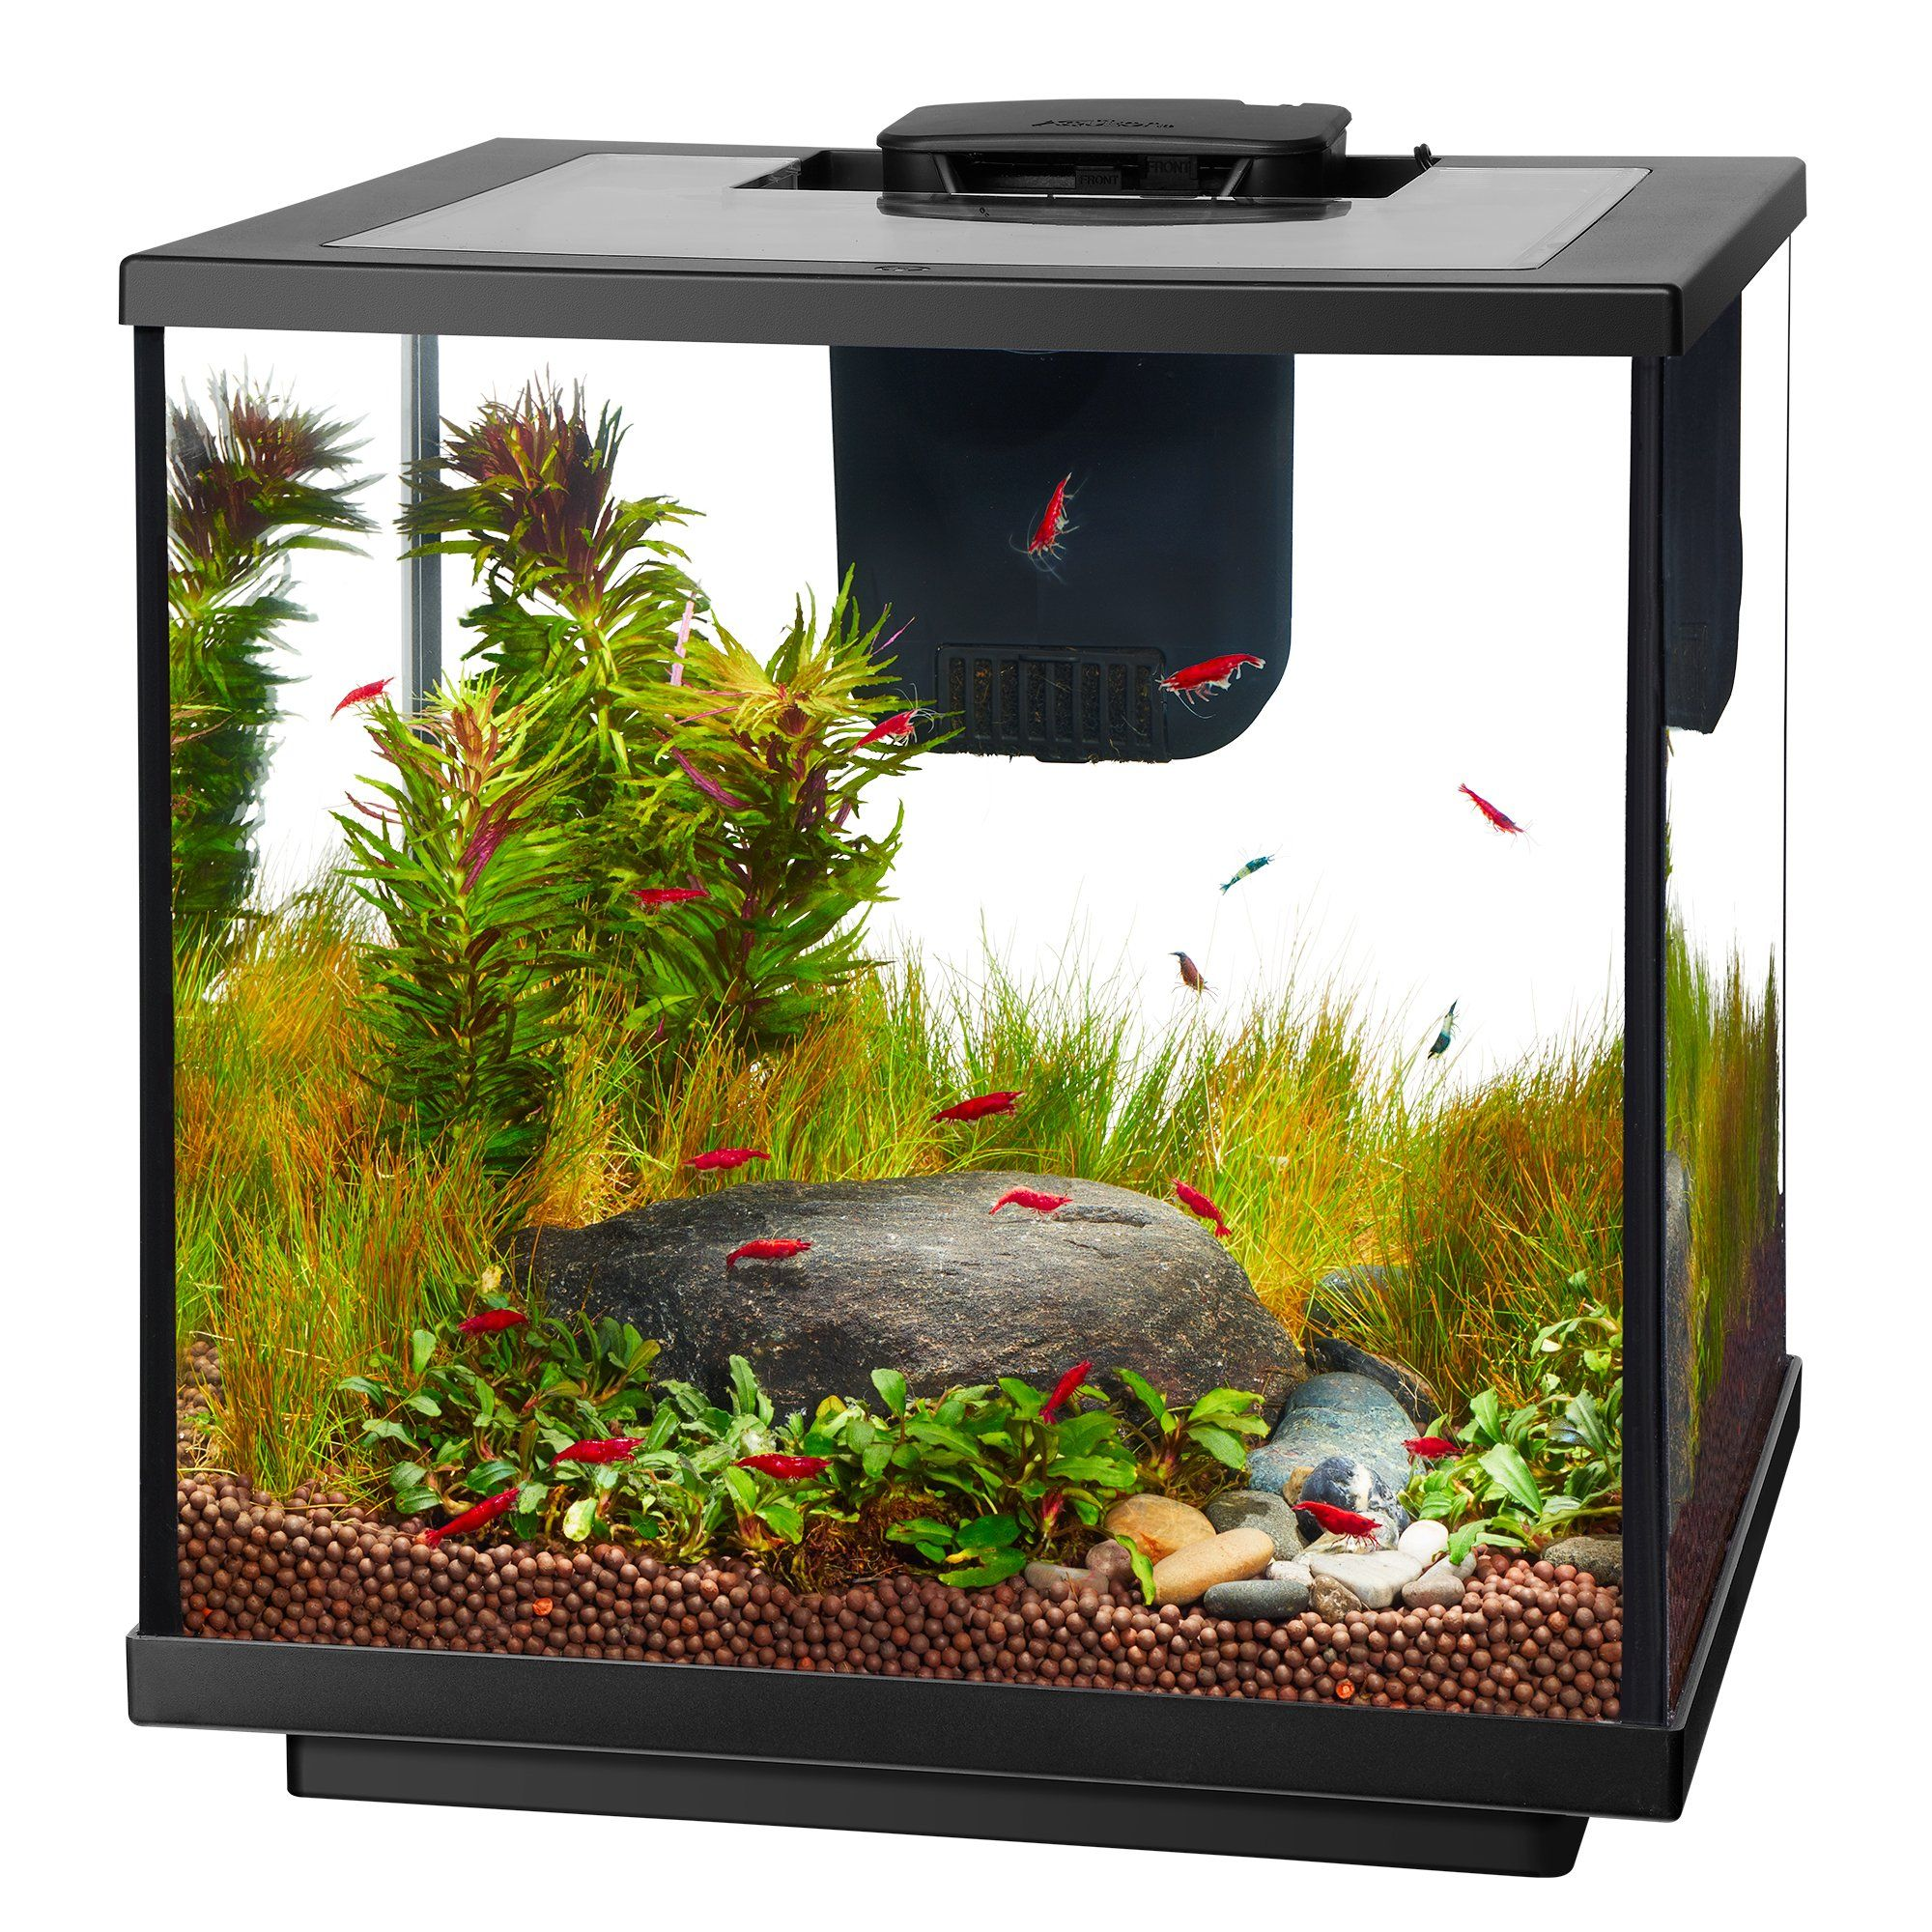 Aqueon LED 7.5 Gallon Shrimp Aquarium Kit | Petco in 2020 ...